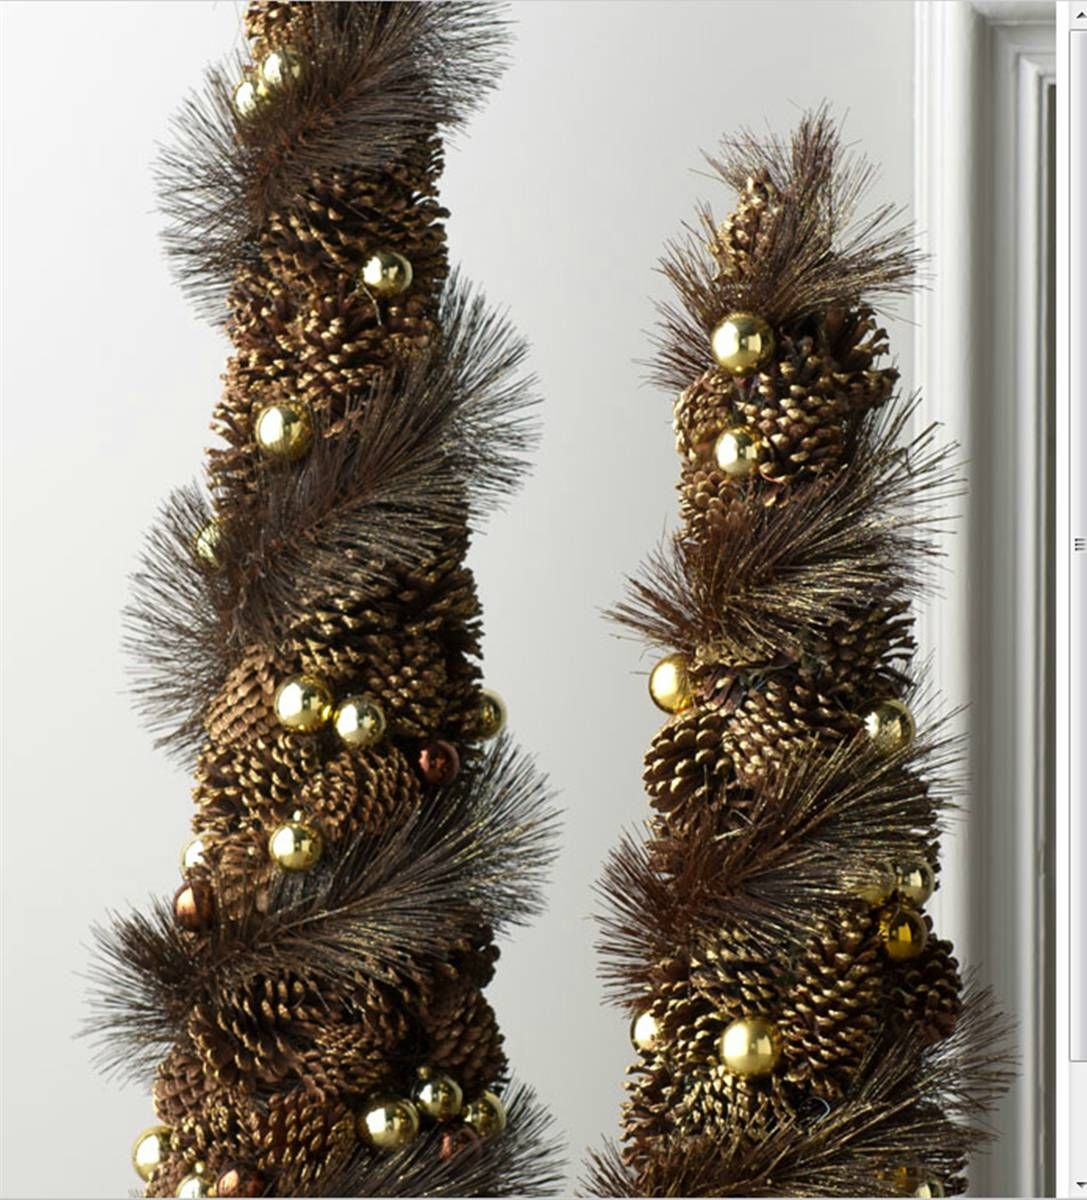 Perennial passion pinecone christmas decor all things christmas winter pinterest pinecone - Crafty winter decorations with pine cones ...